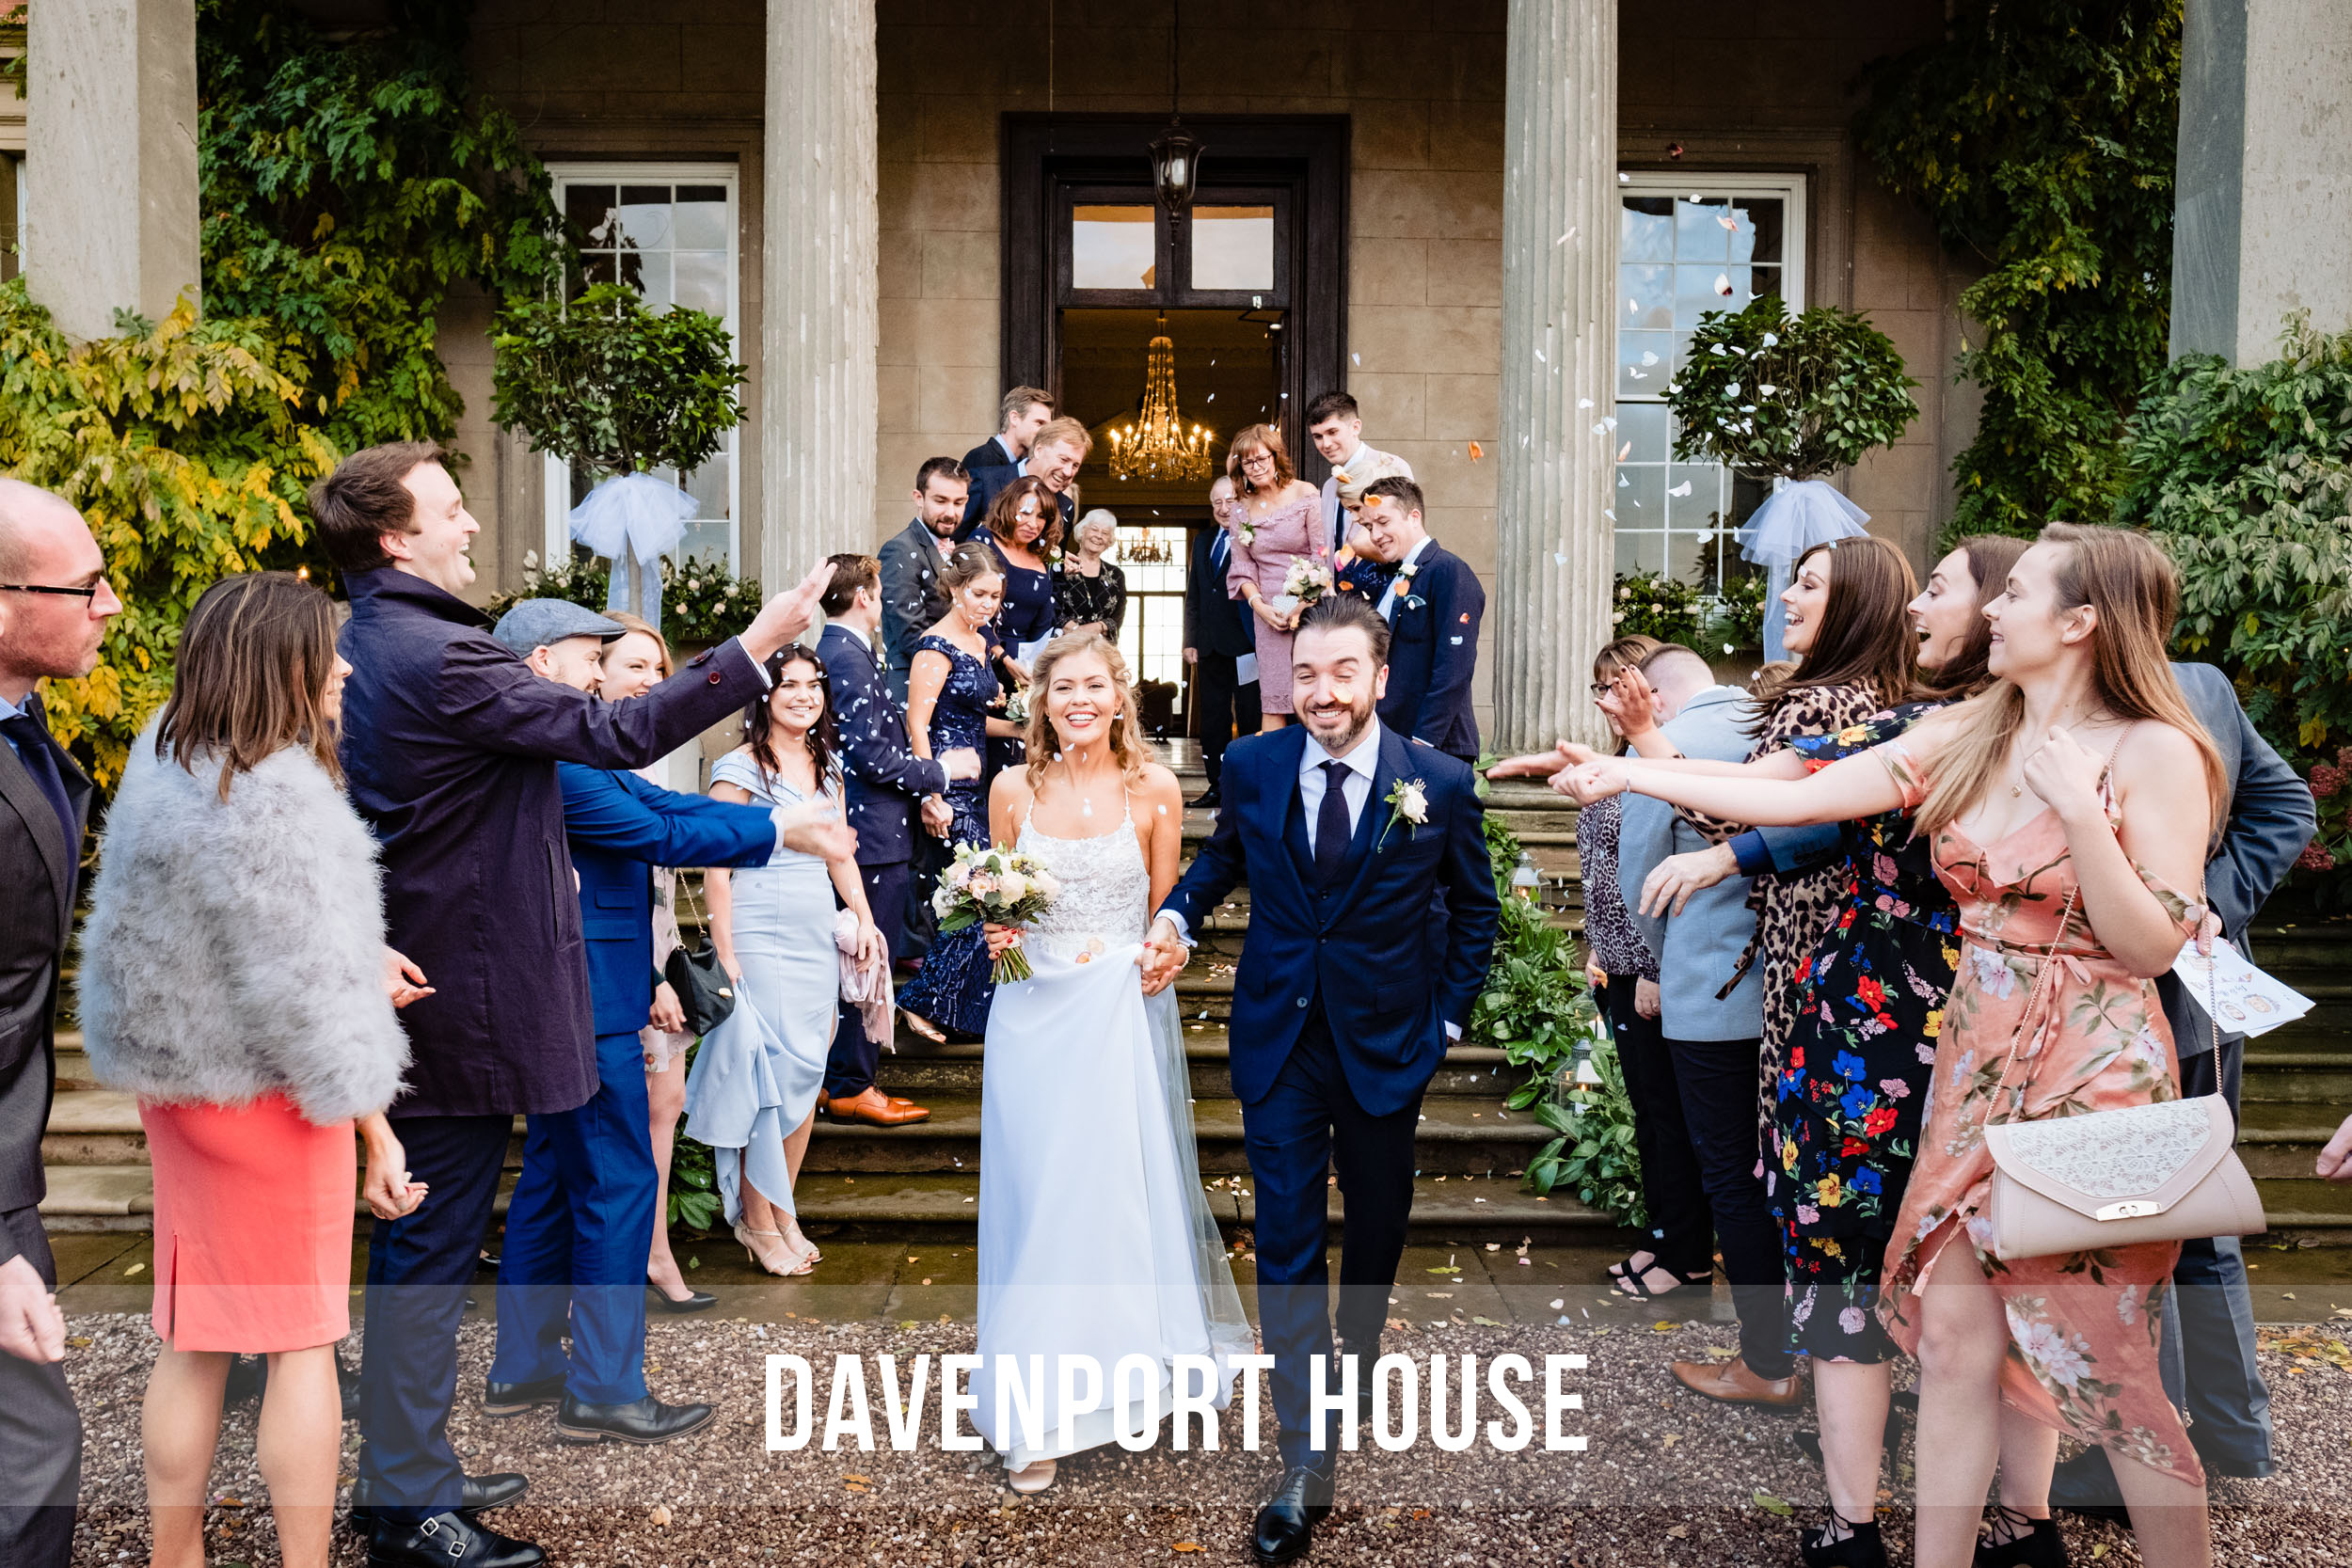 Davenport House Wedding Photographer.jpg